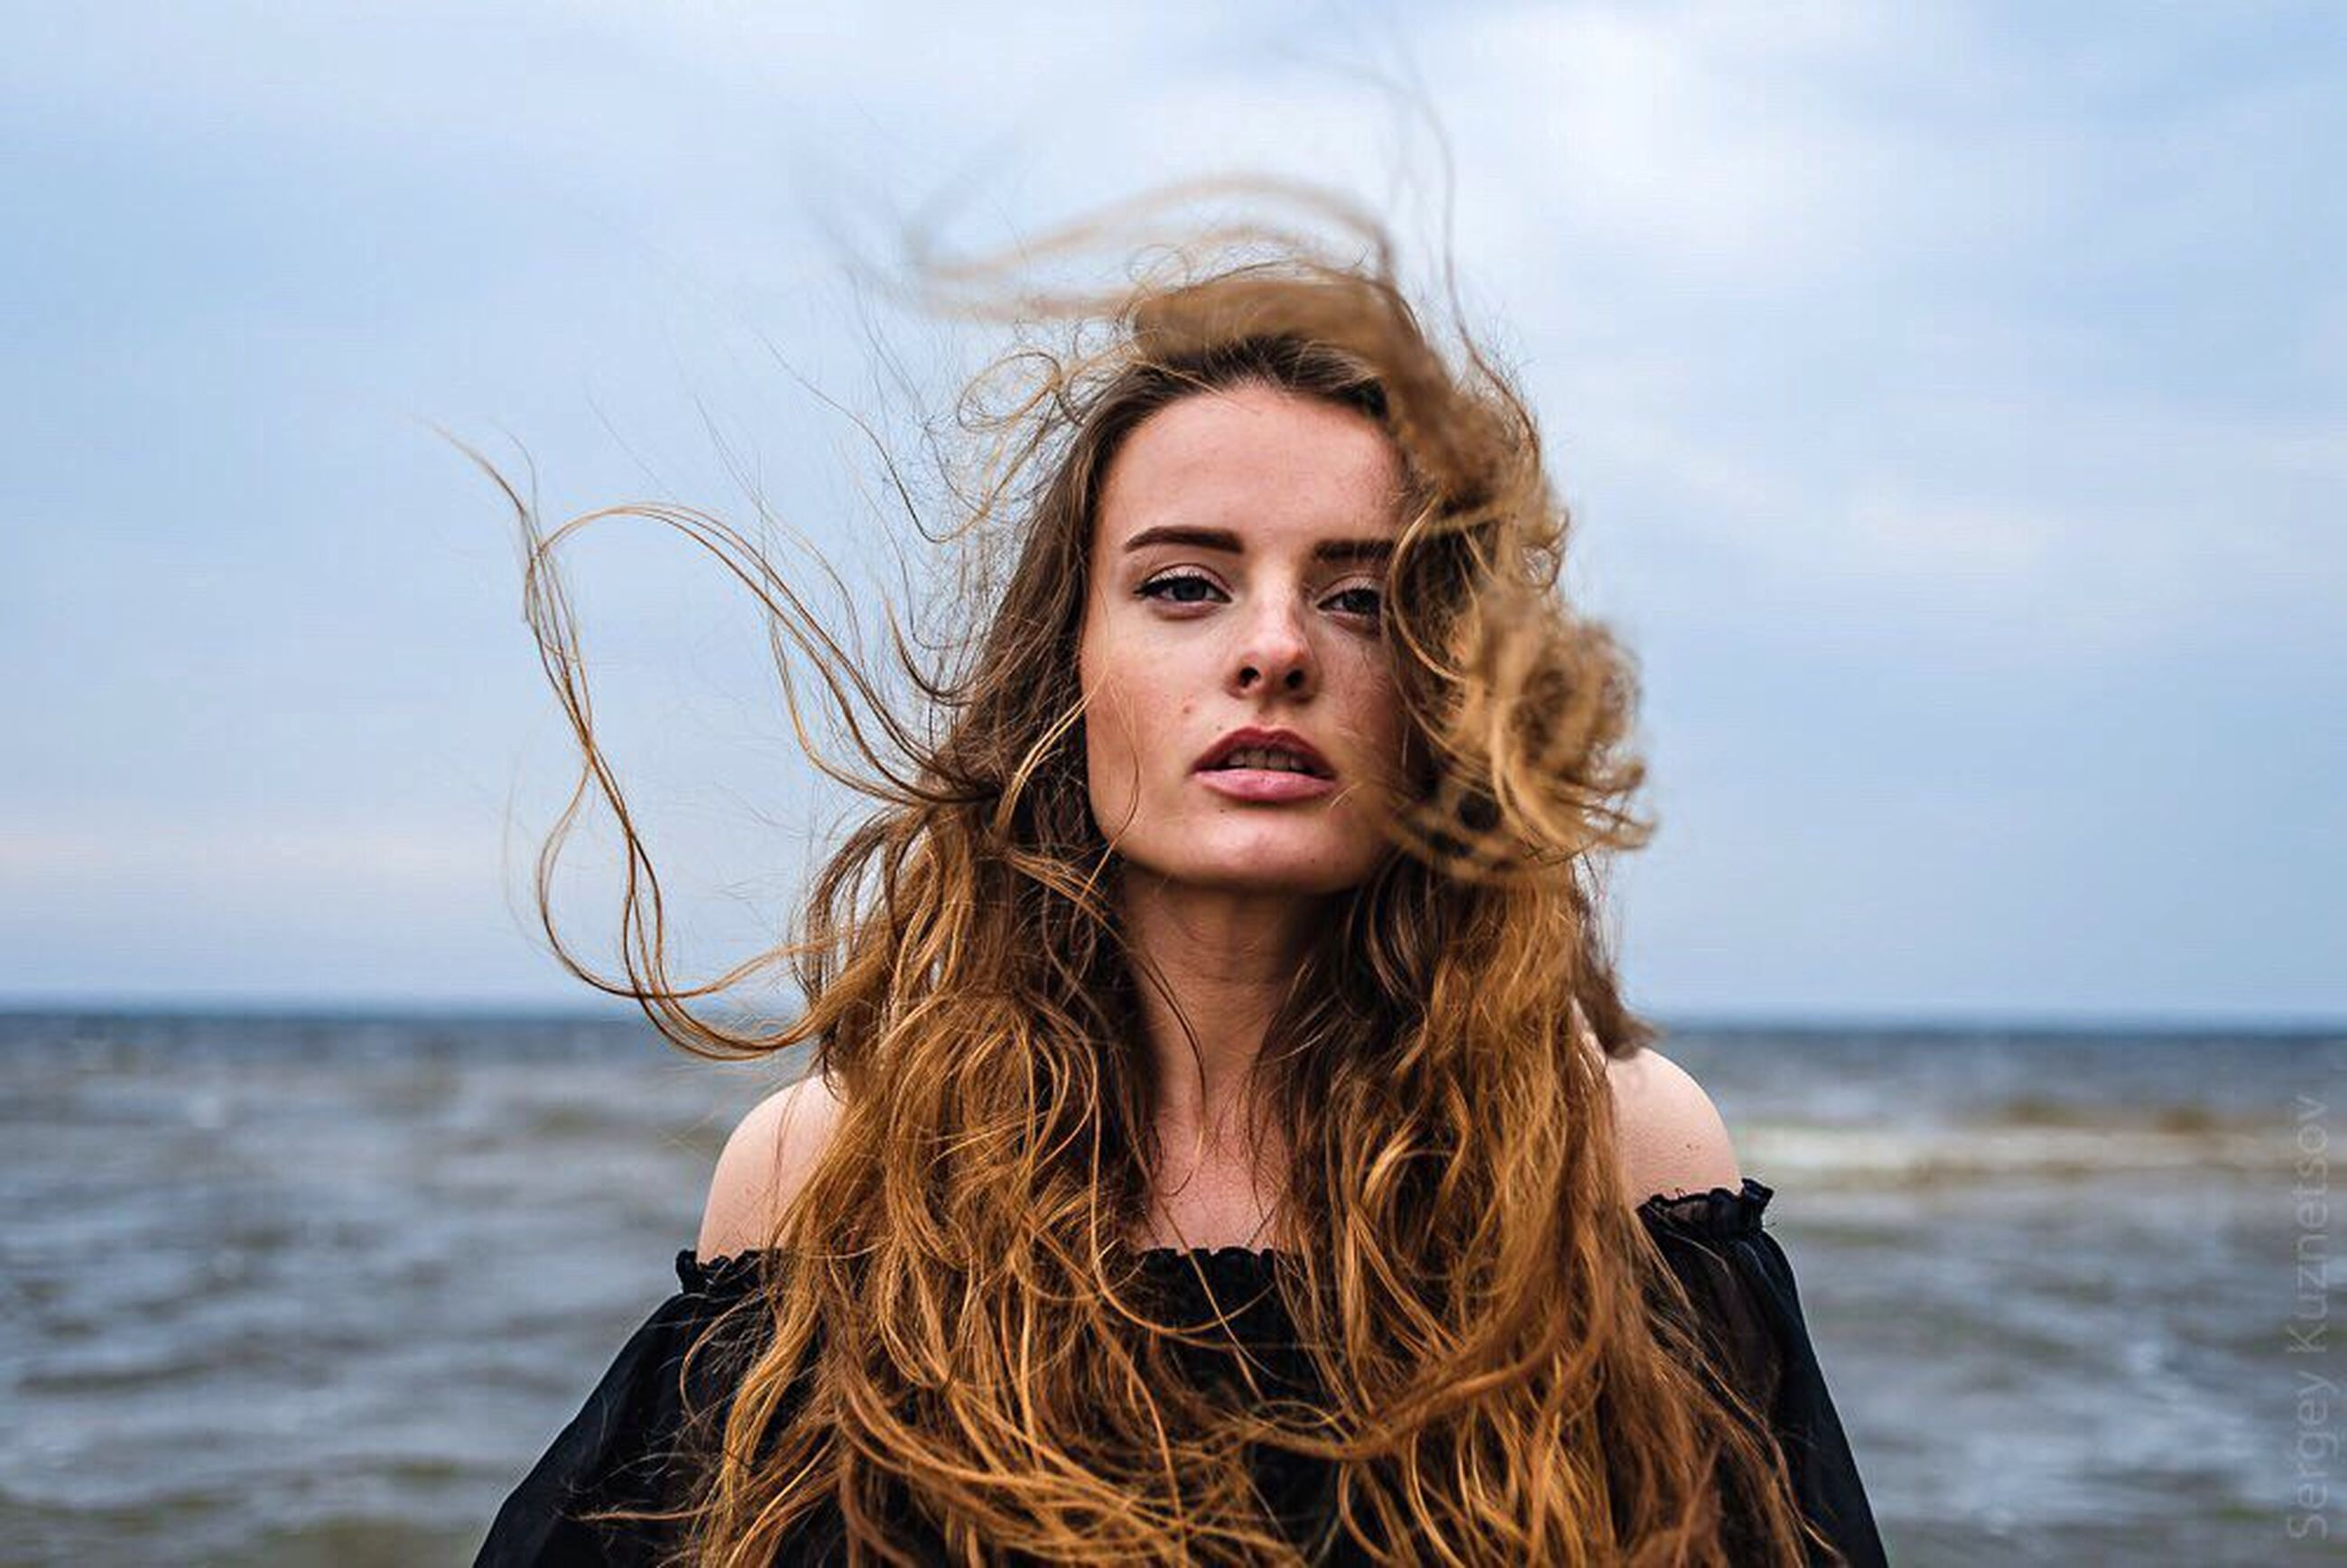 long hair, young adult, young women, looking at camera, person, portrait, lifestyles, leisure activity, brown hair, front view, headshot, sky, smiling, beach, water, focus on foreground, blond hair